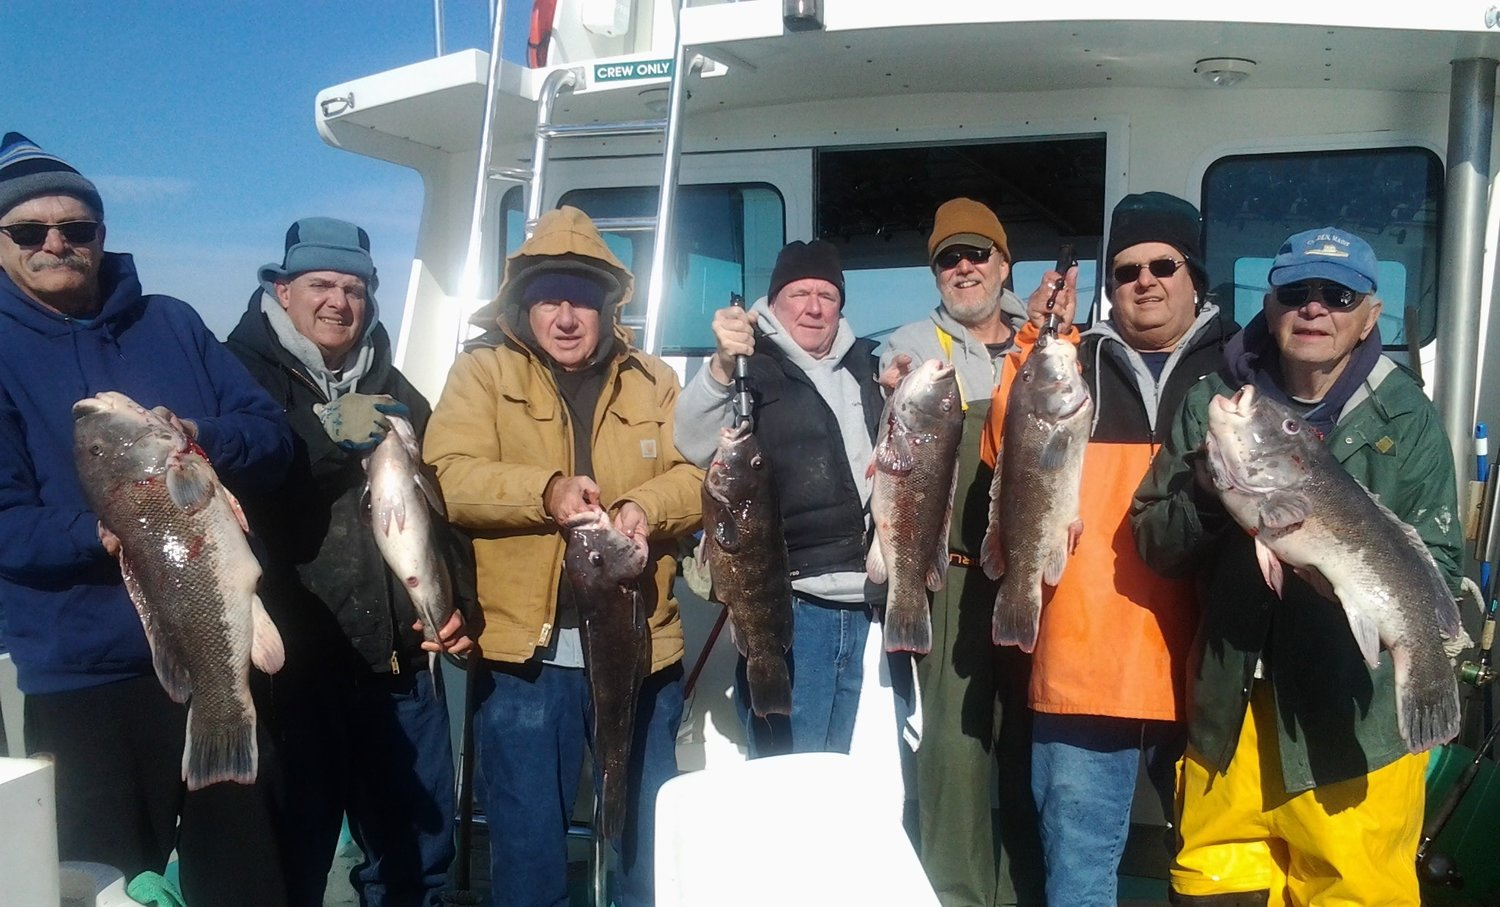 Big tautog: Capt. Charlie Donilon of Snappa Charters, Pt. Judith, takes this New York group tautog fishing every fall. Capt. Donilon to speak at a Saltwater Anglers Zoom seminar on September 28.